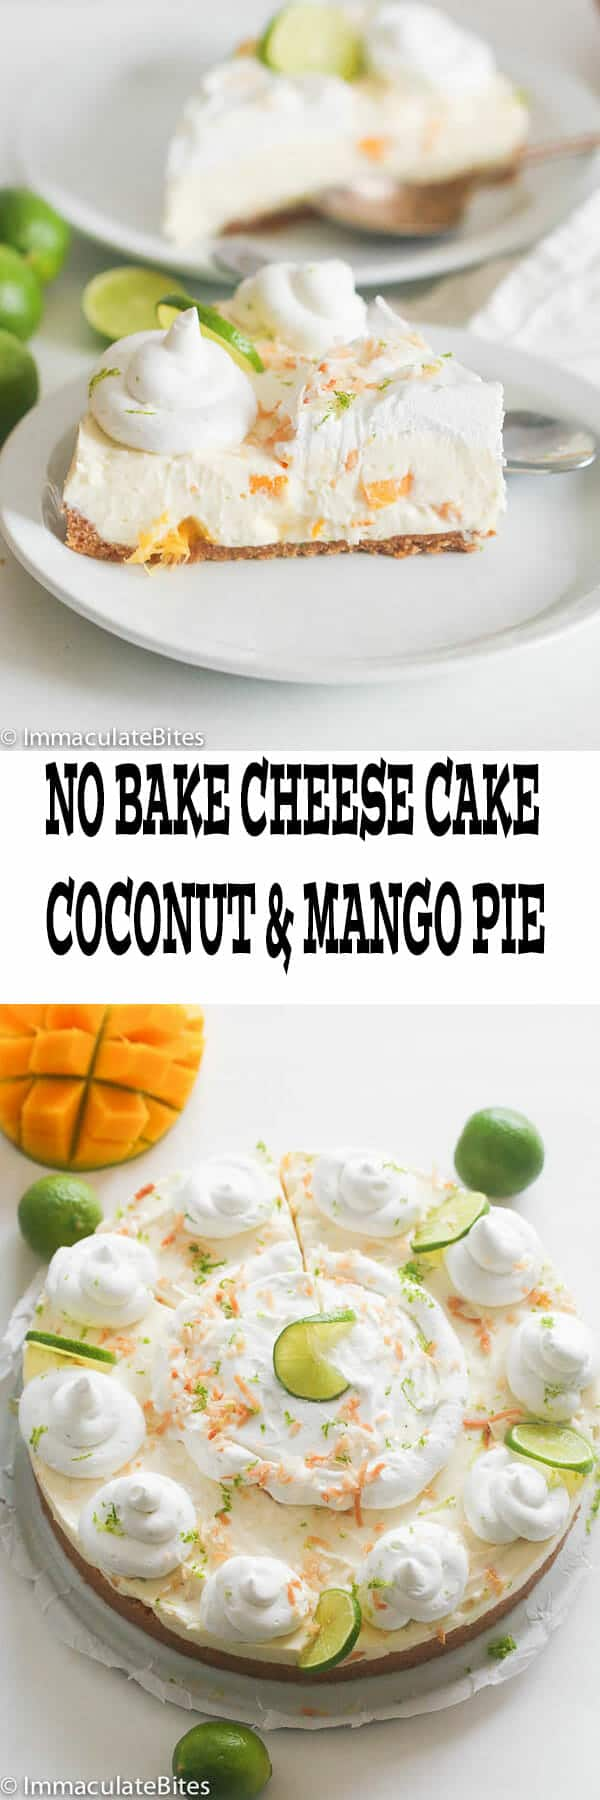 No Bake cheese cake and mango coconut pie